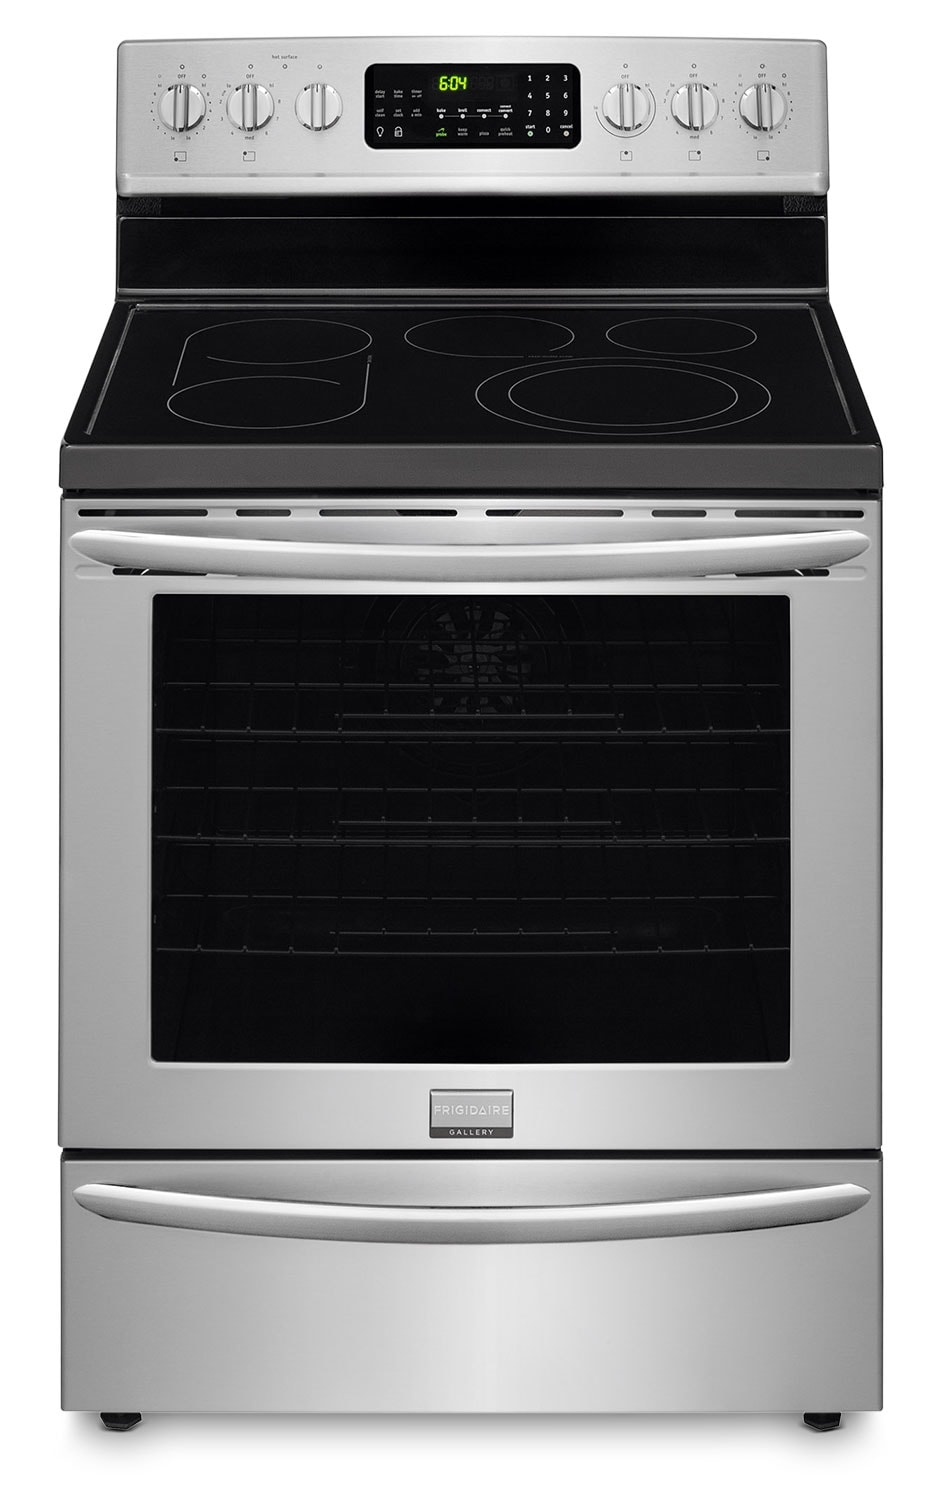 Cooking Products - Frigidaire Gallery Stainless Steel Freestanding Electric Convection Range (5.8 Cu. Ft.) - CGEF3059RF